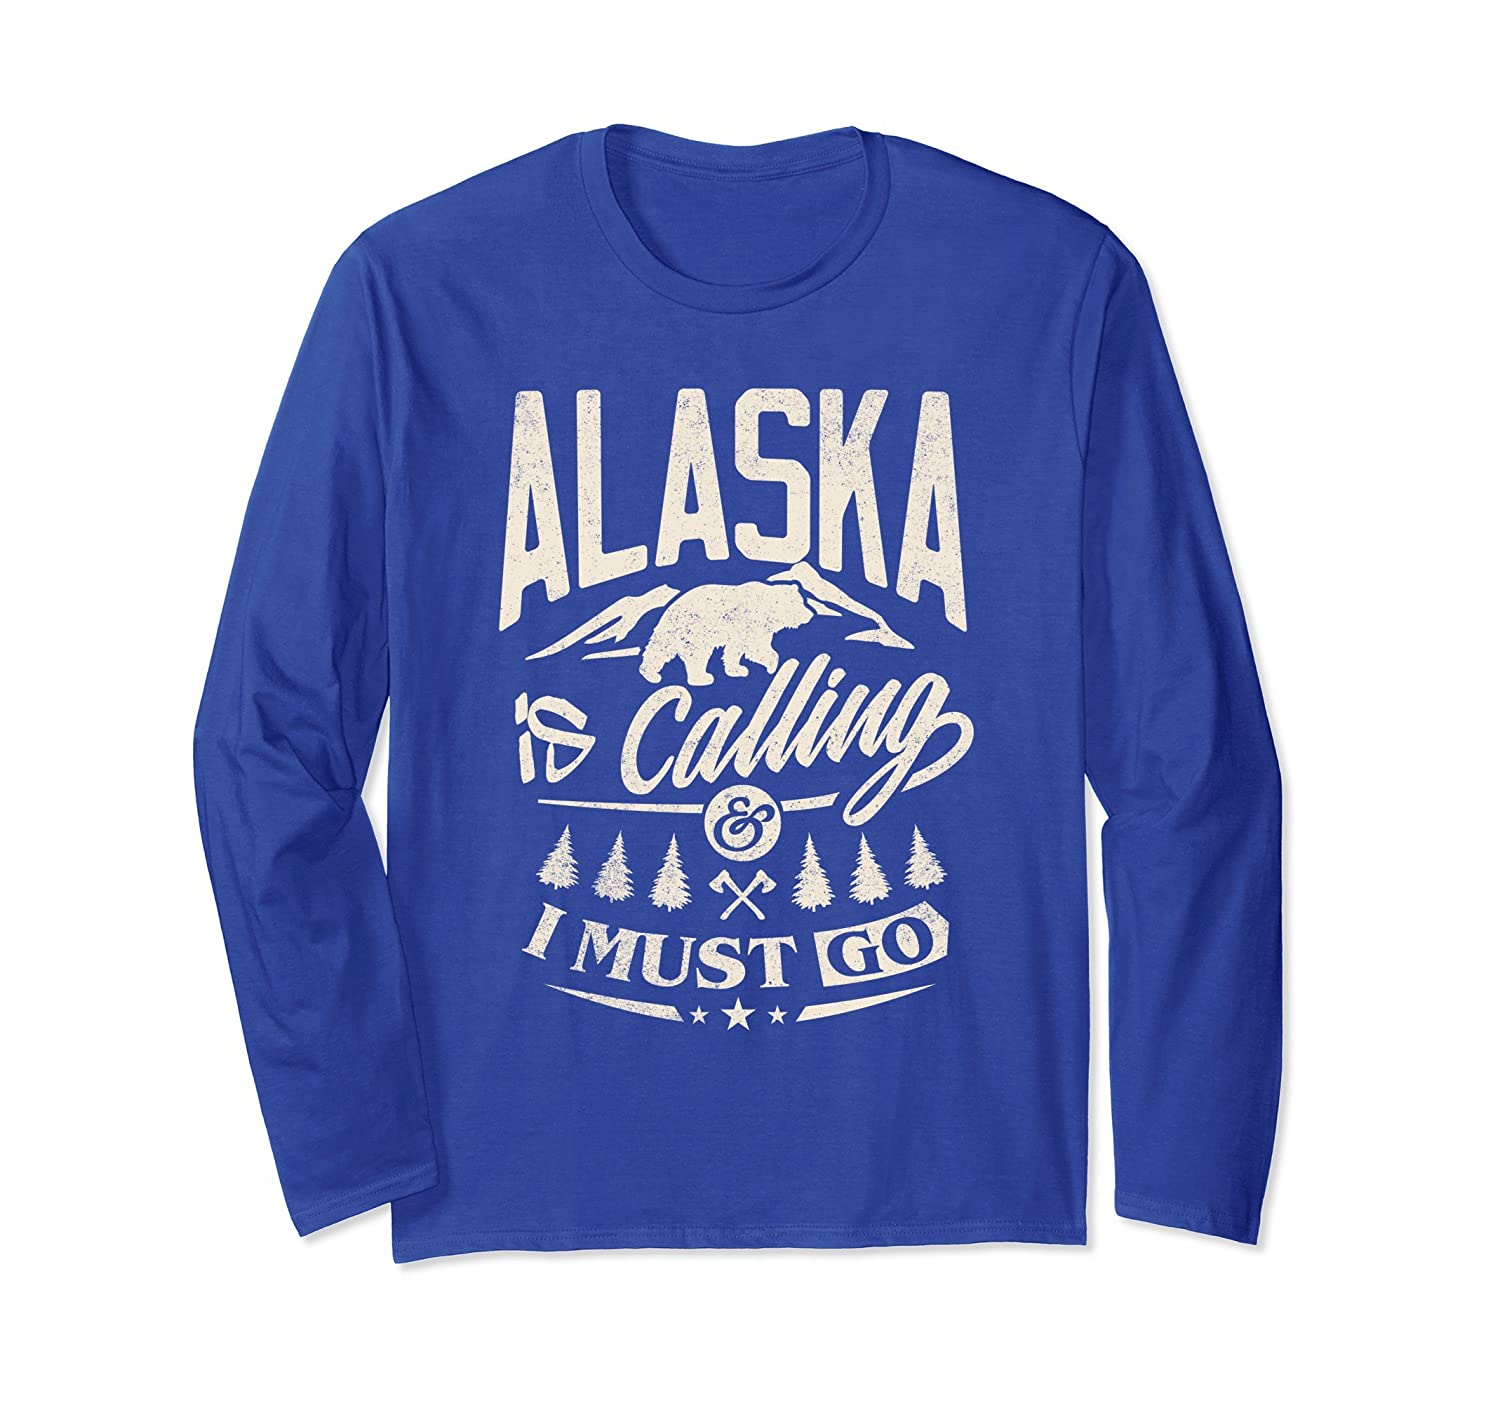 Alaska Shirt - Alaska is calling me and I must go-alottee gift